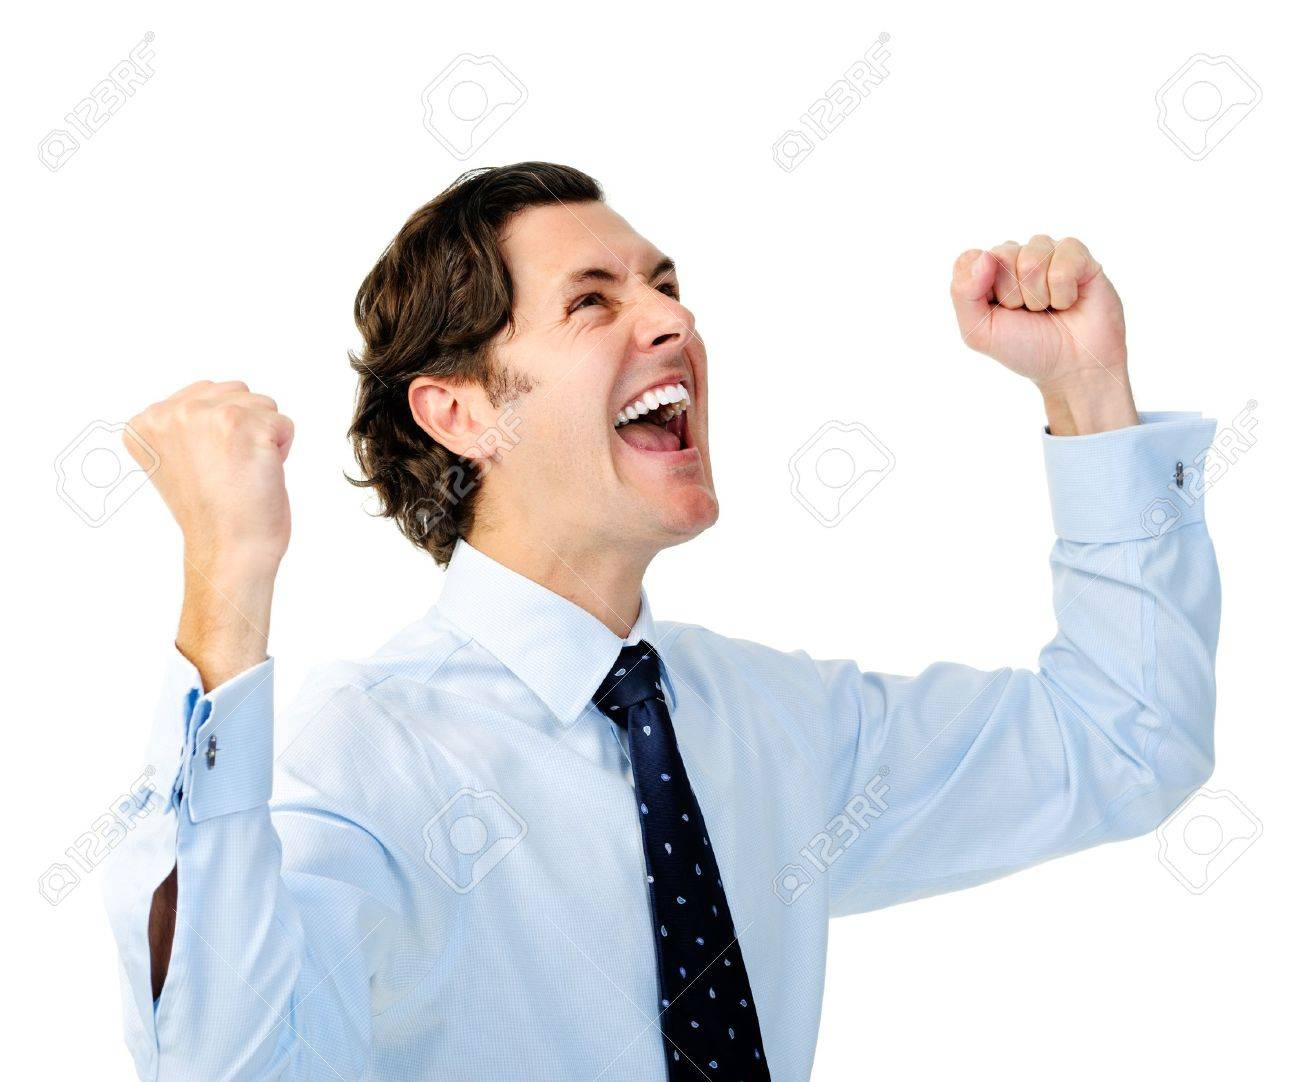 http://previews.123rf.com/images/warrengoldswain/warrengoldswain1201/warrengoldswain120100362/11900613-Excited-businessman-celebrates-by-pumping-fists-Stock-Photo-fist-pump.jpg